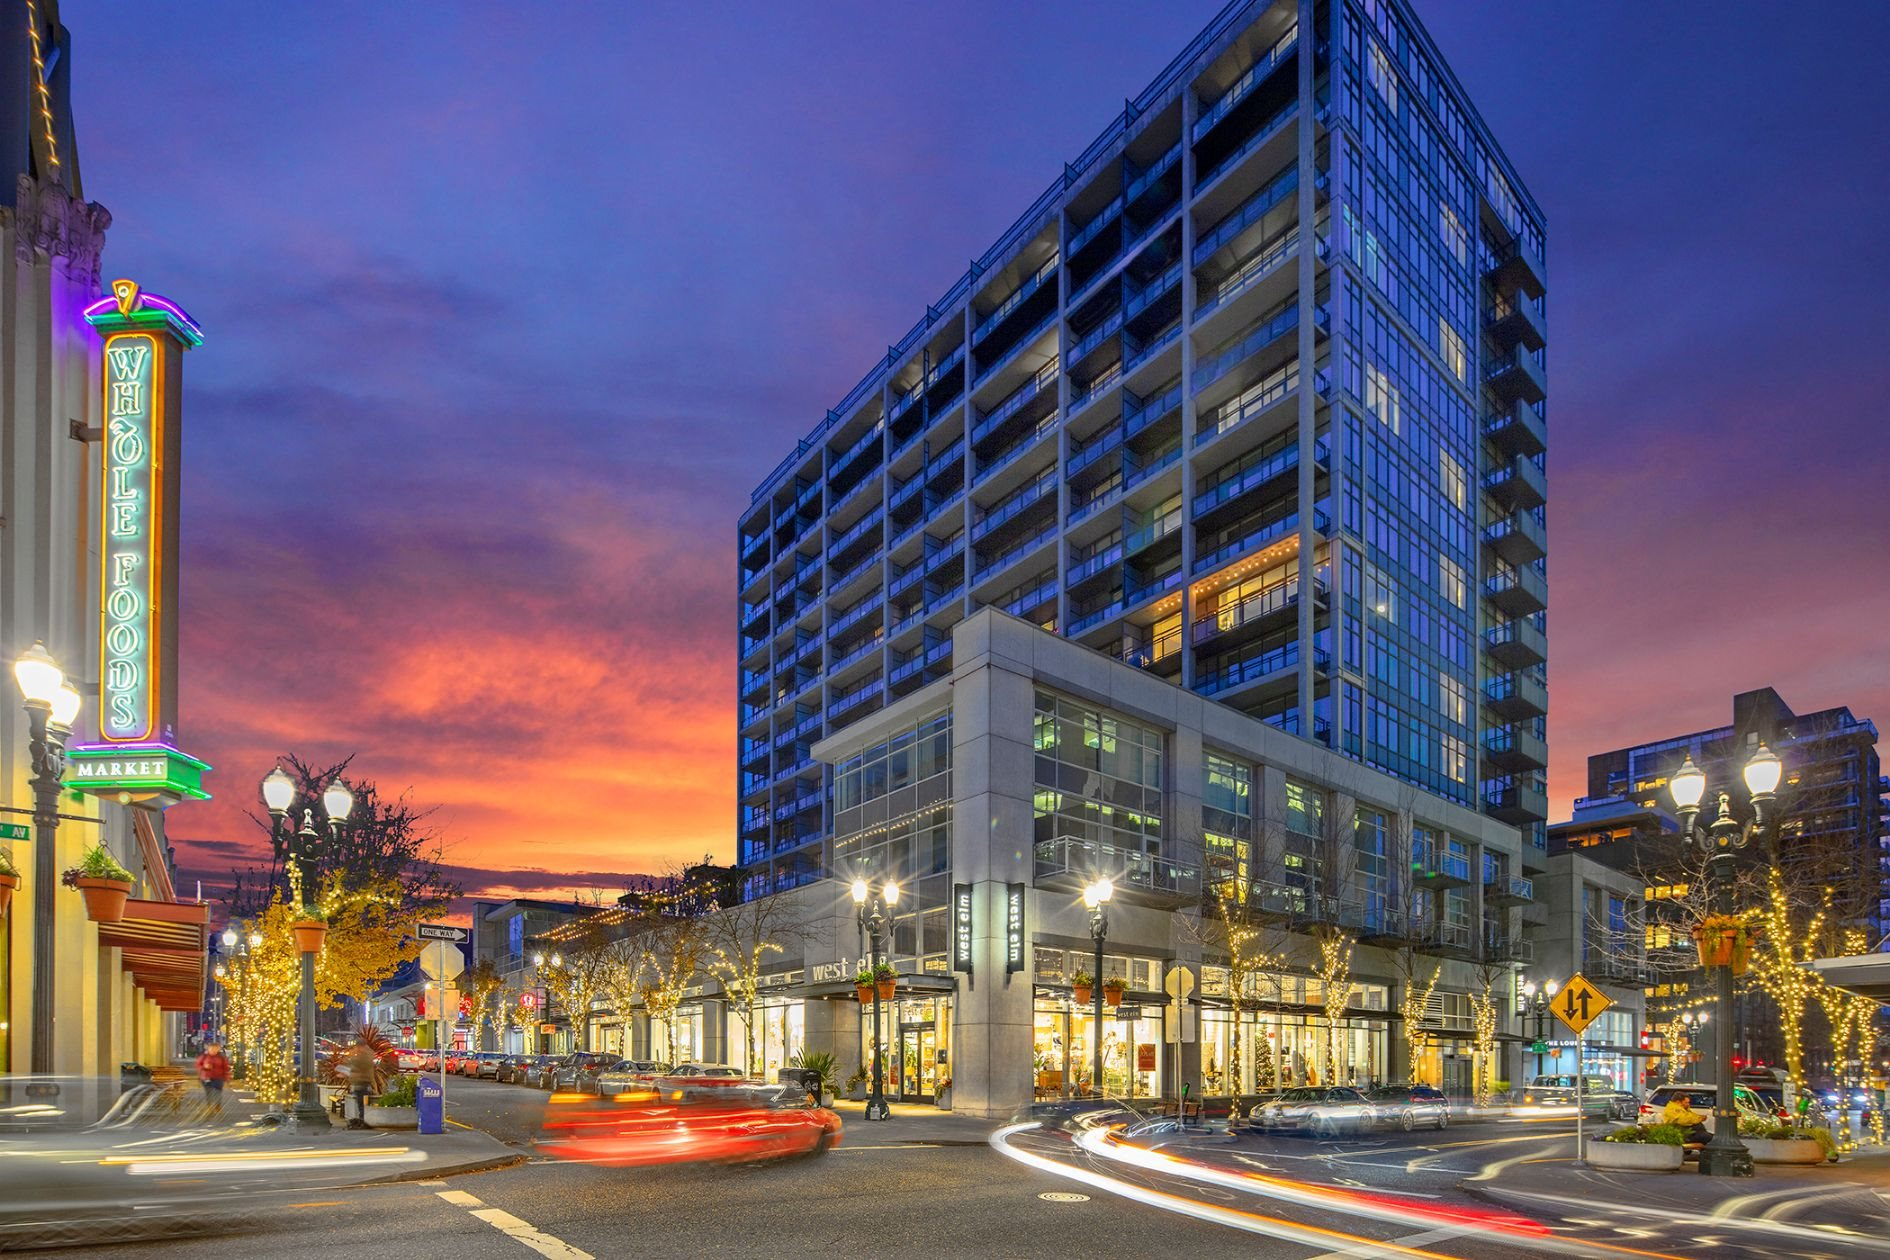 Night View of The Louisa Apartments in Portland, Oregon